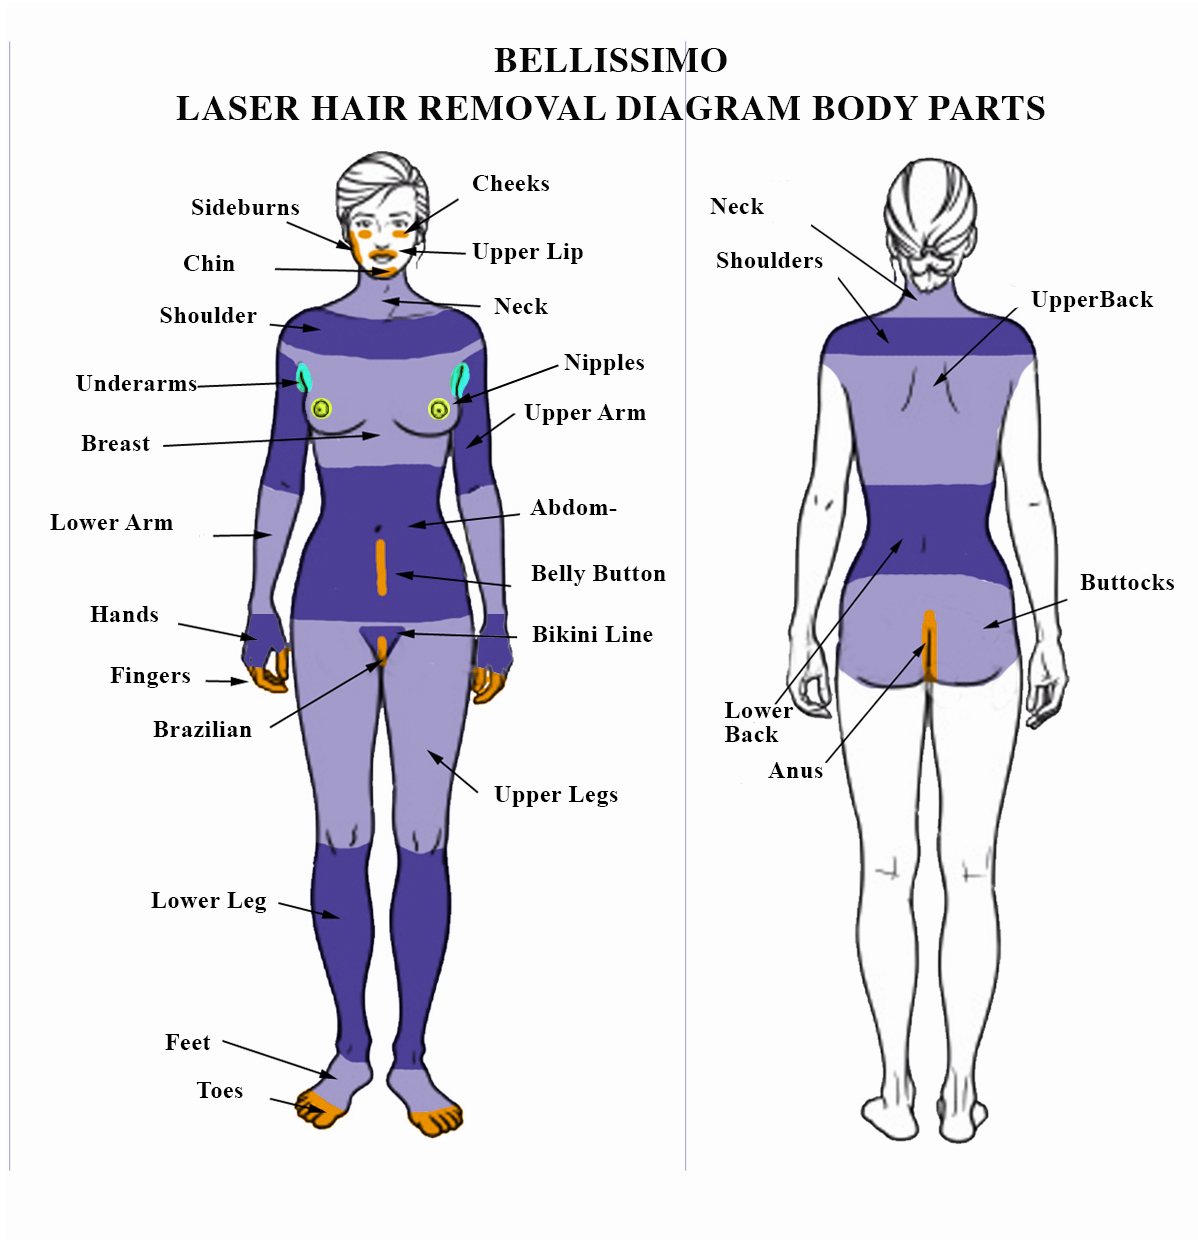 Bellisimo diagram soprano laser hair removal